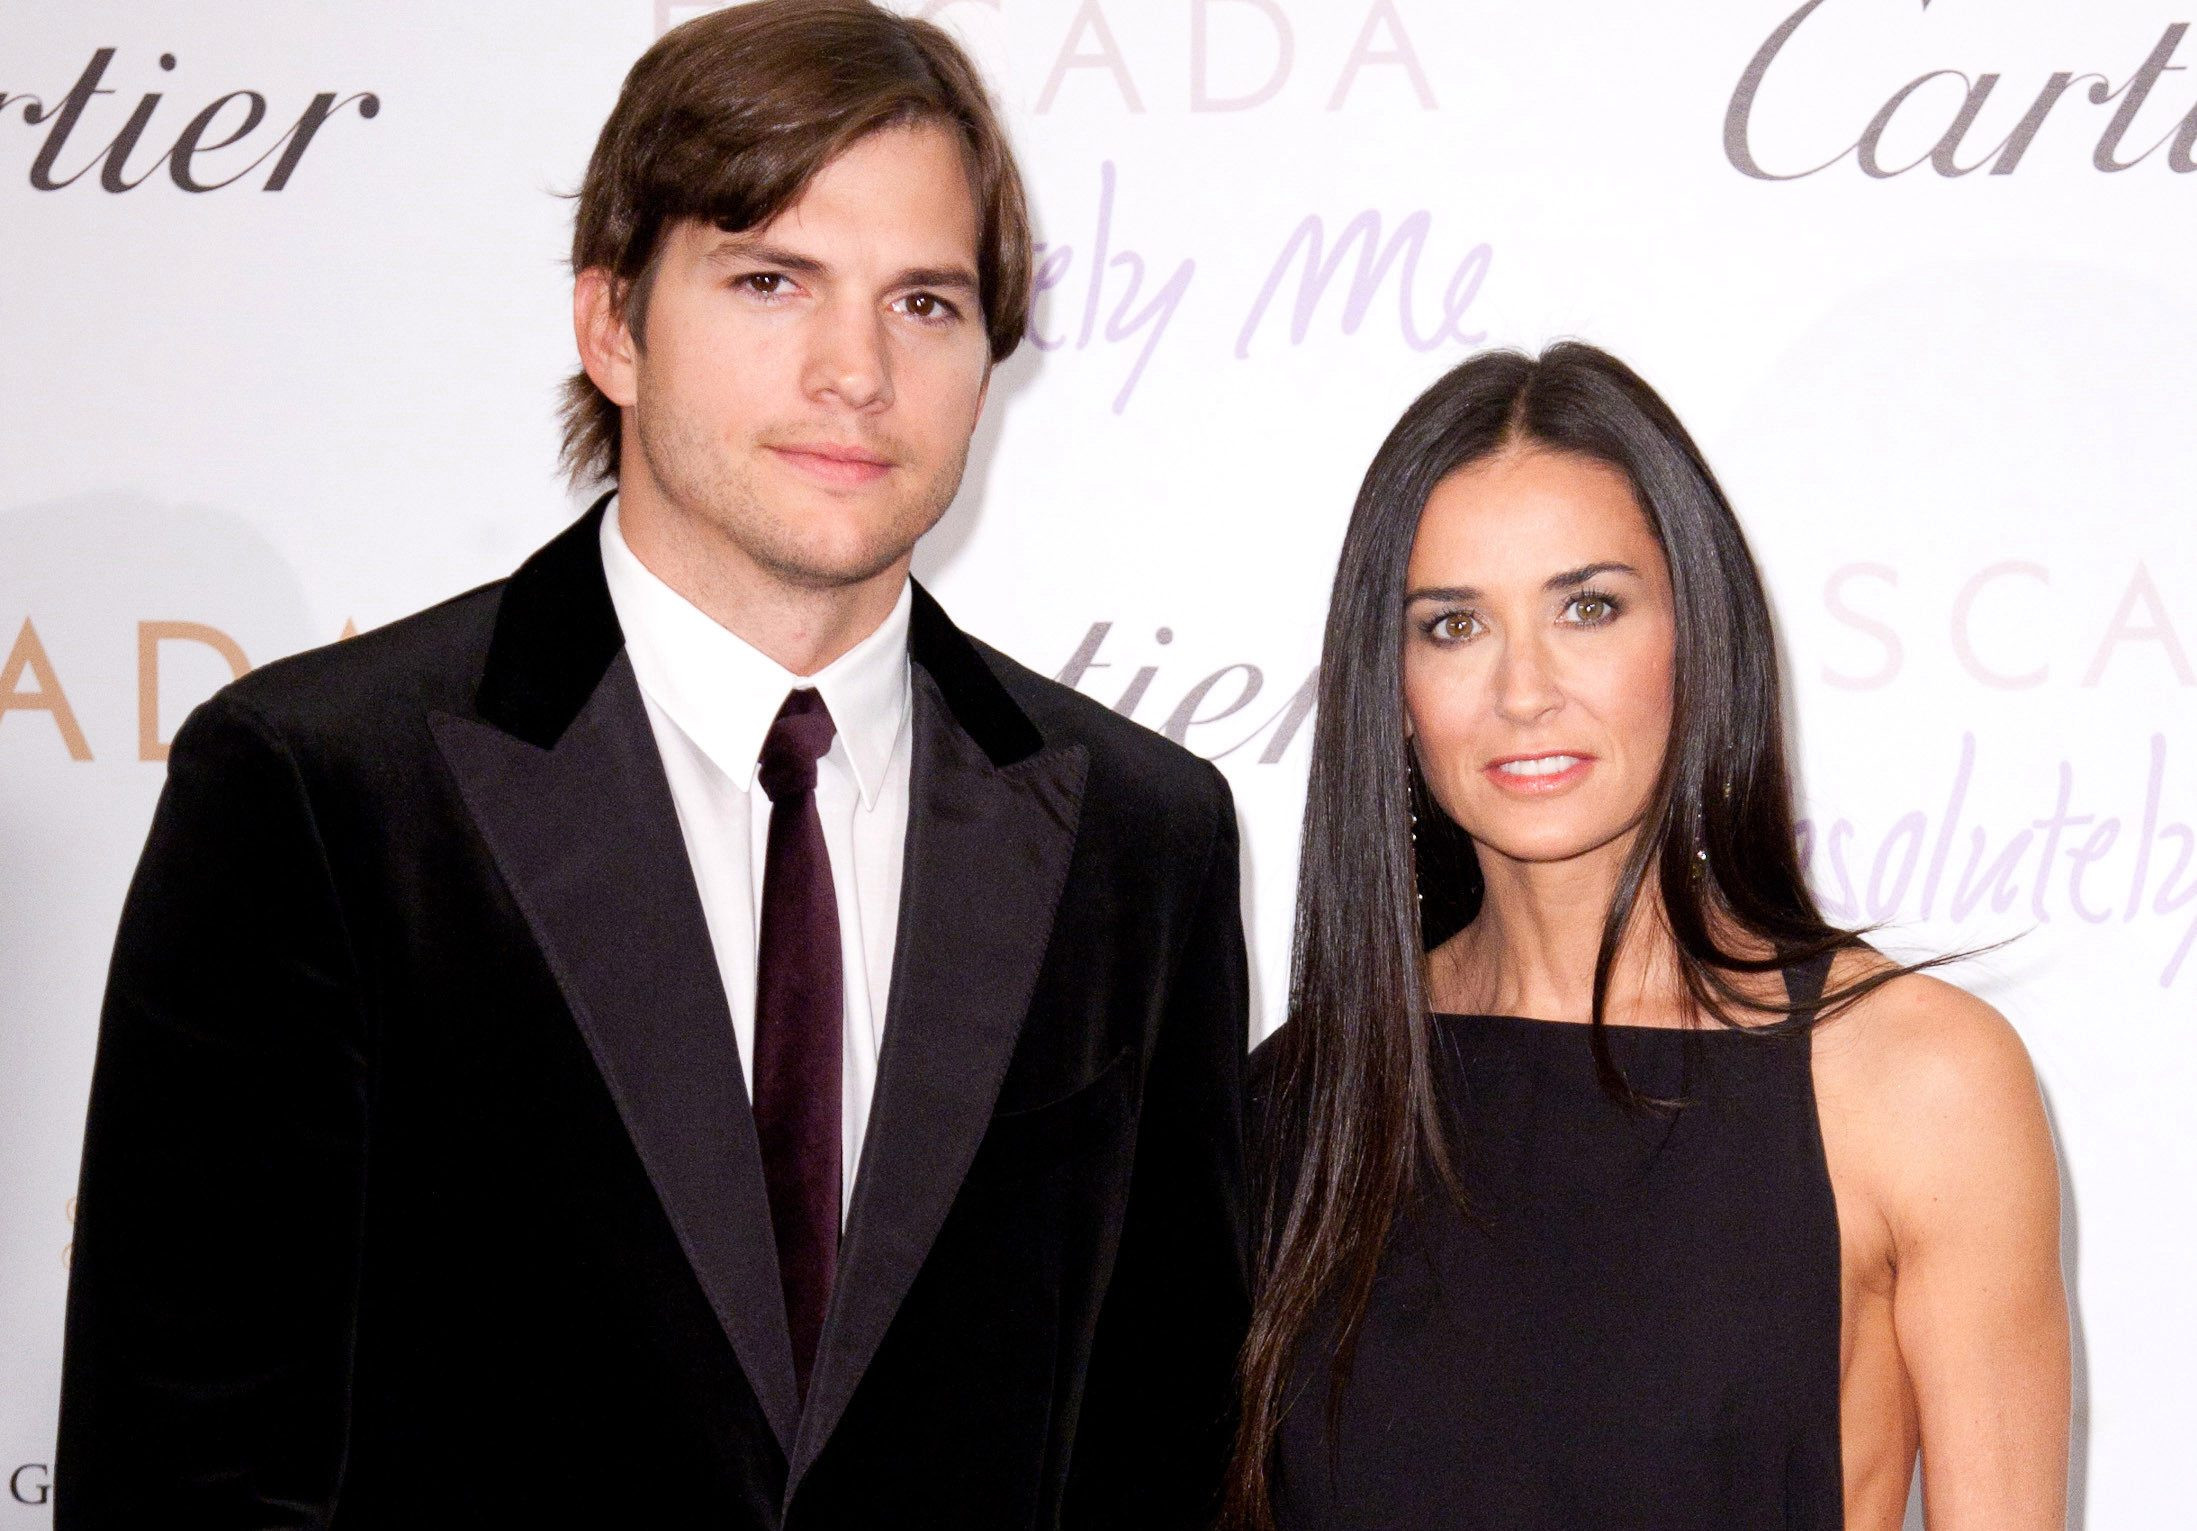 Mila Kunis is Starving herself after Demi Moore revealed the Truth about Ashton Kutcher